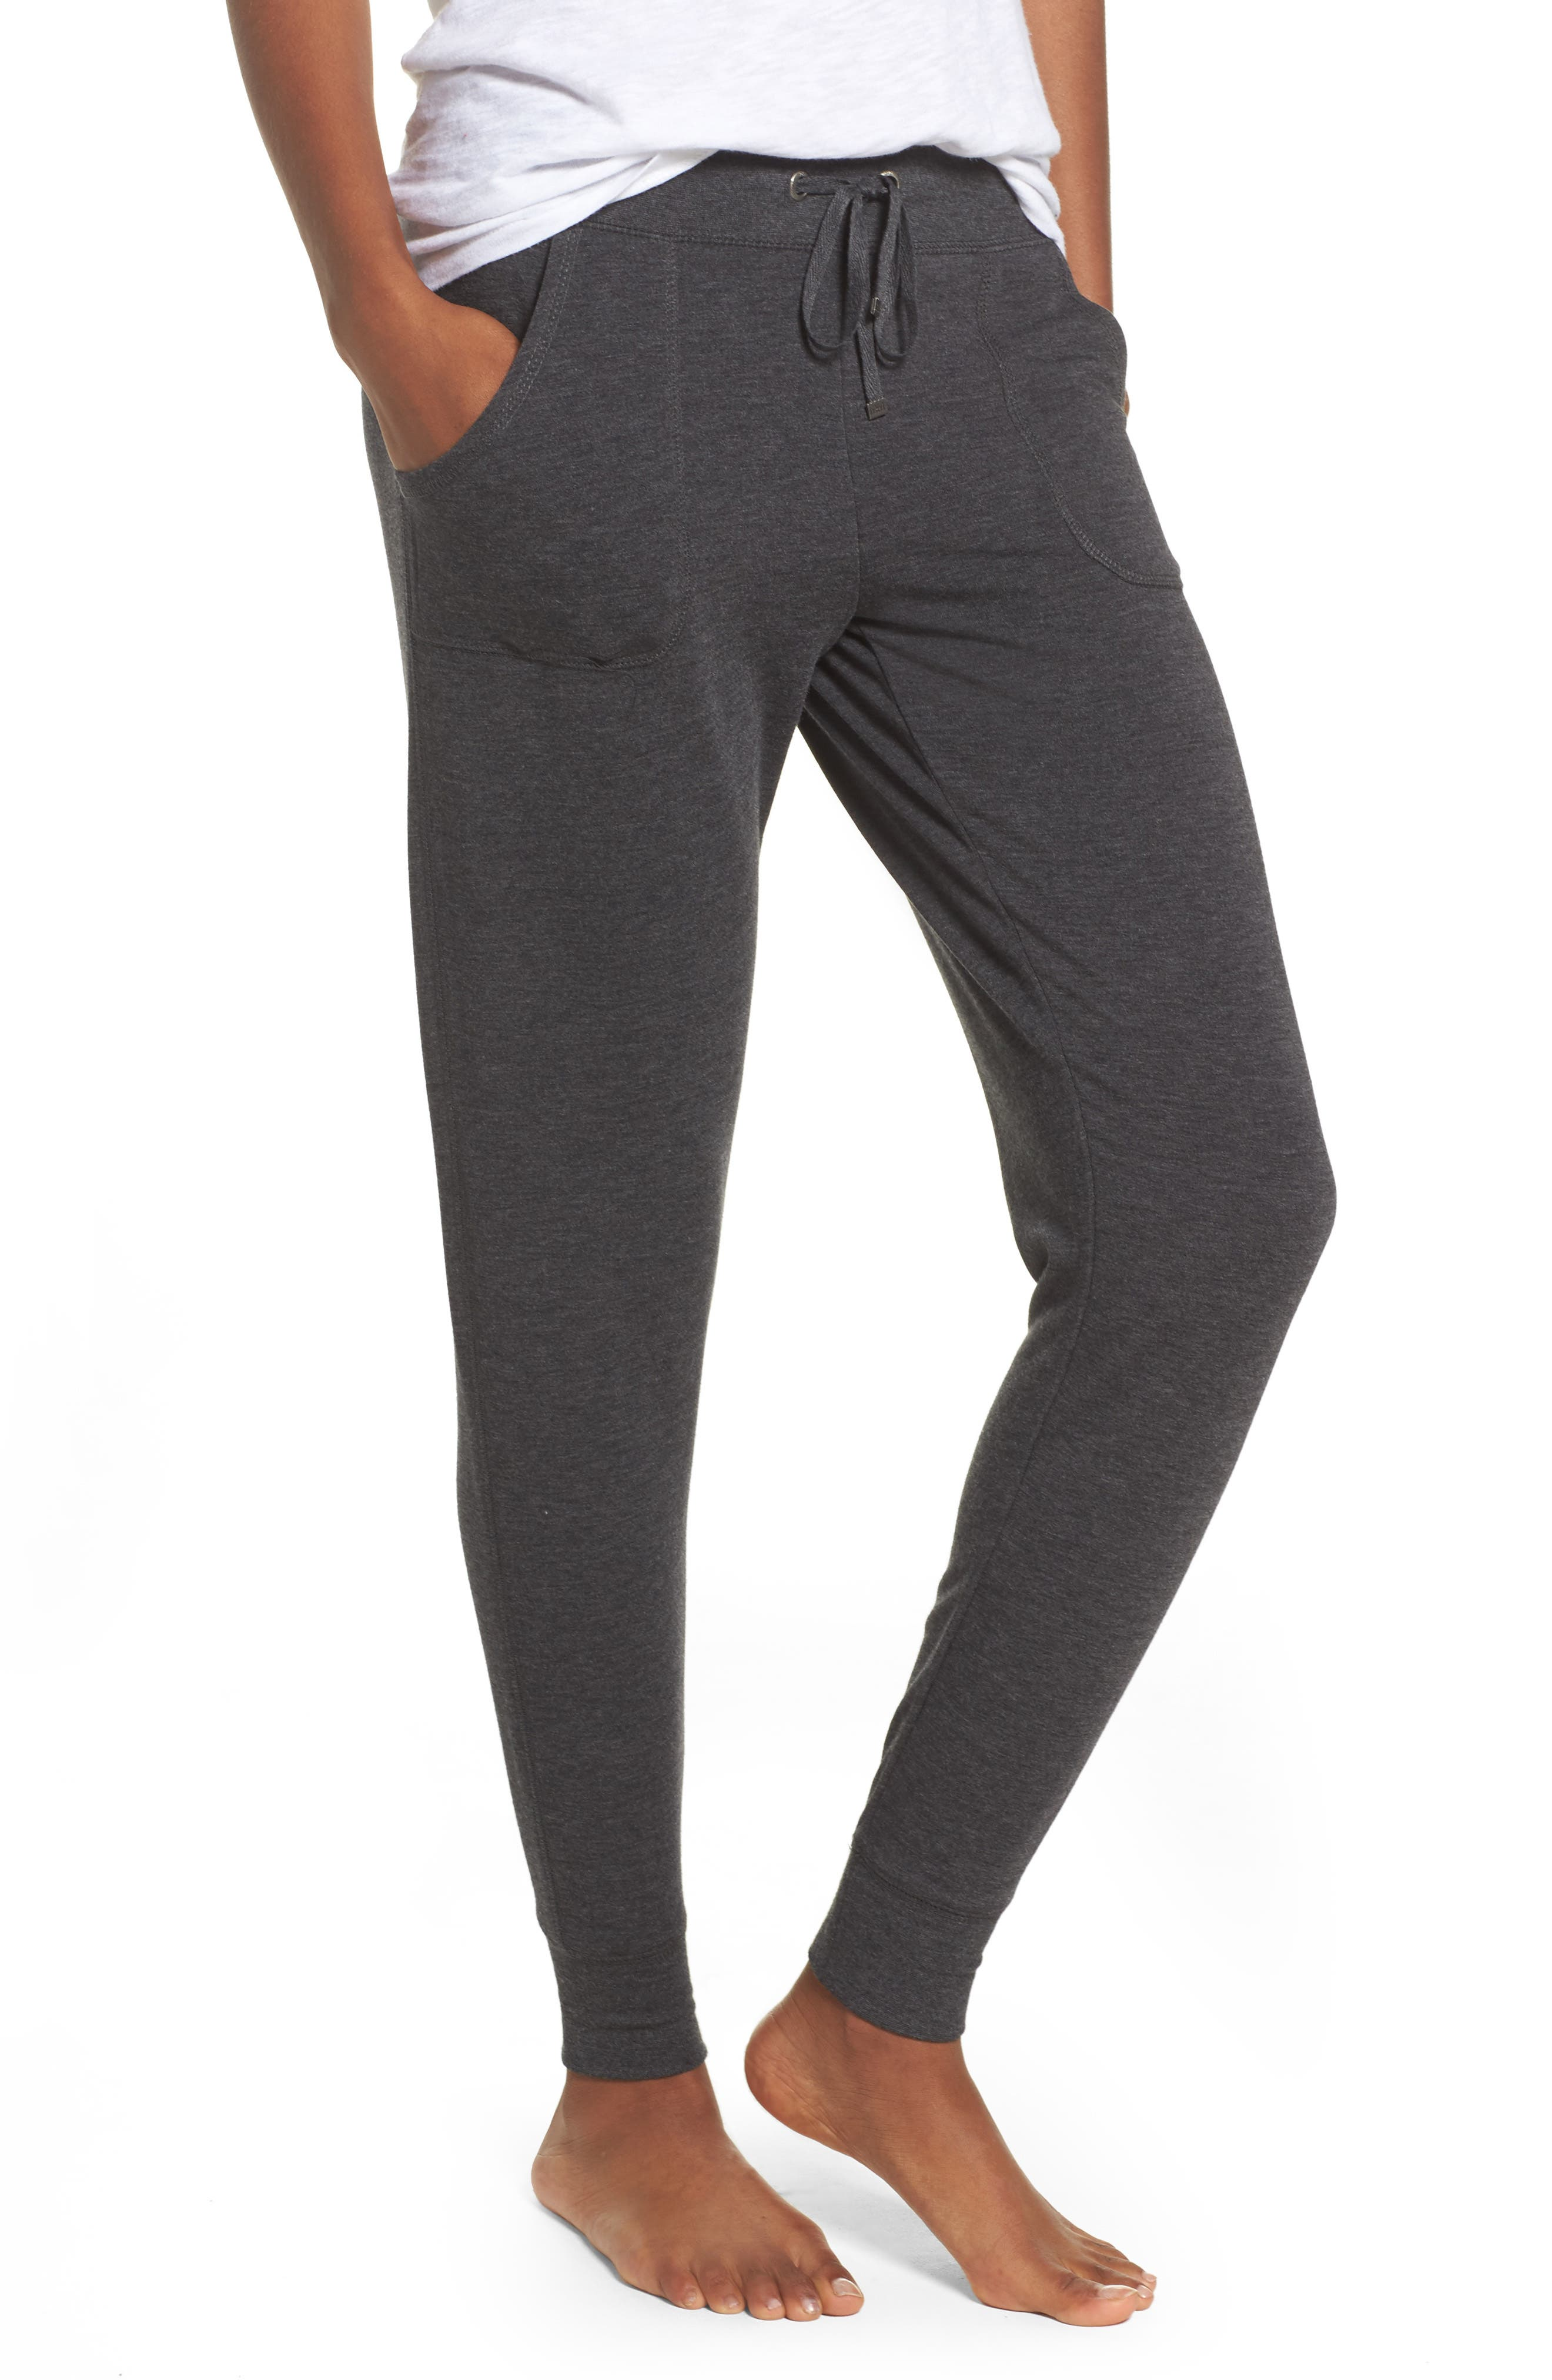 All About It Lounge Pants,                         Main,                         color, 030